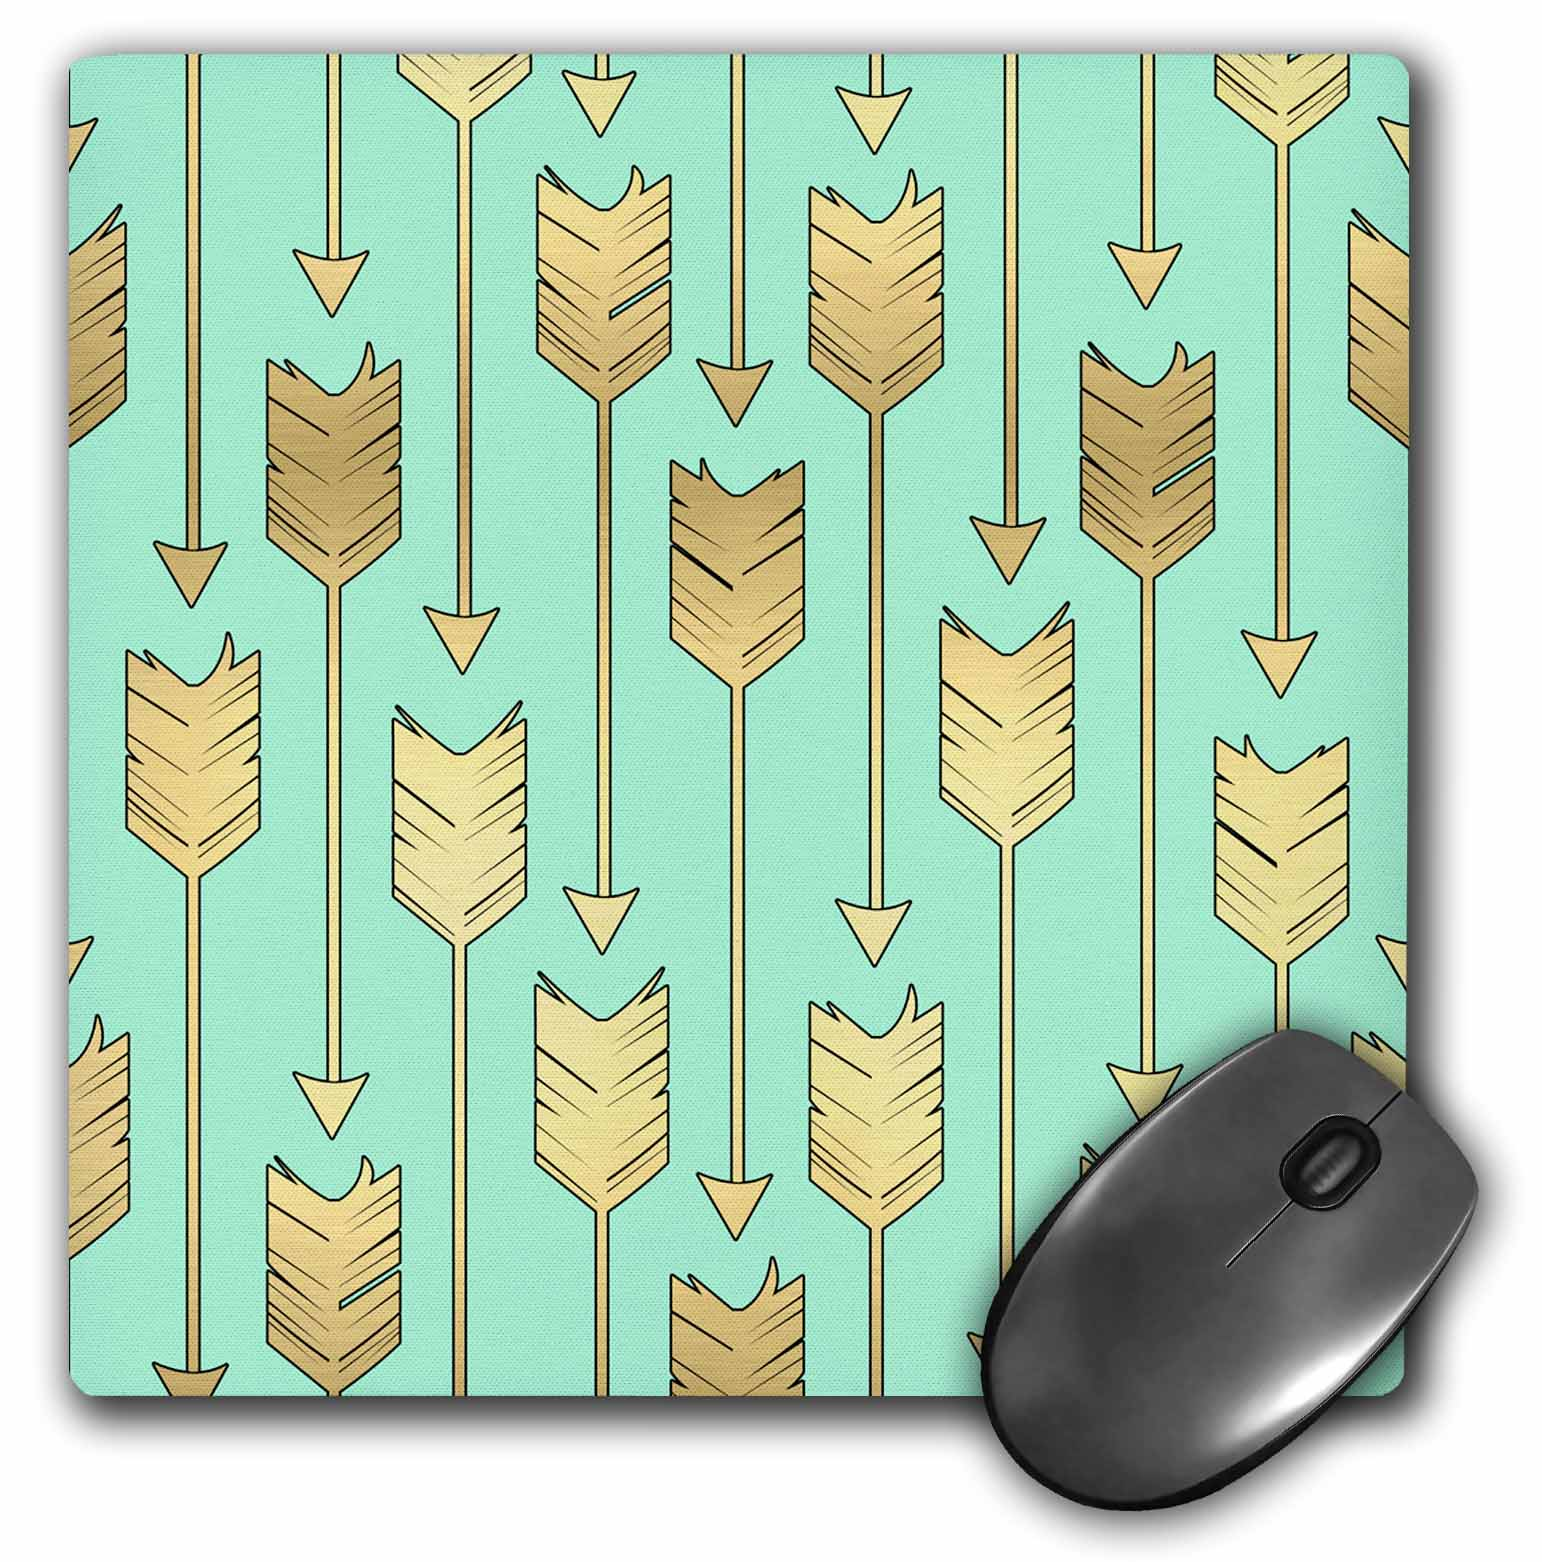 3dRose Mint and Gold Arrows Pattern, Mouse Pad, 8 by 8 inches